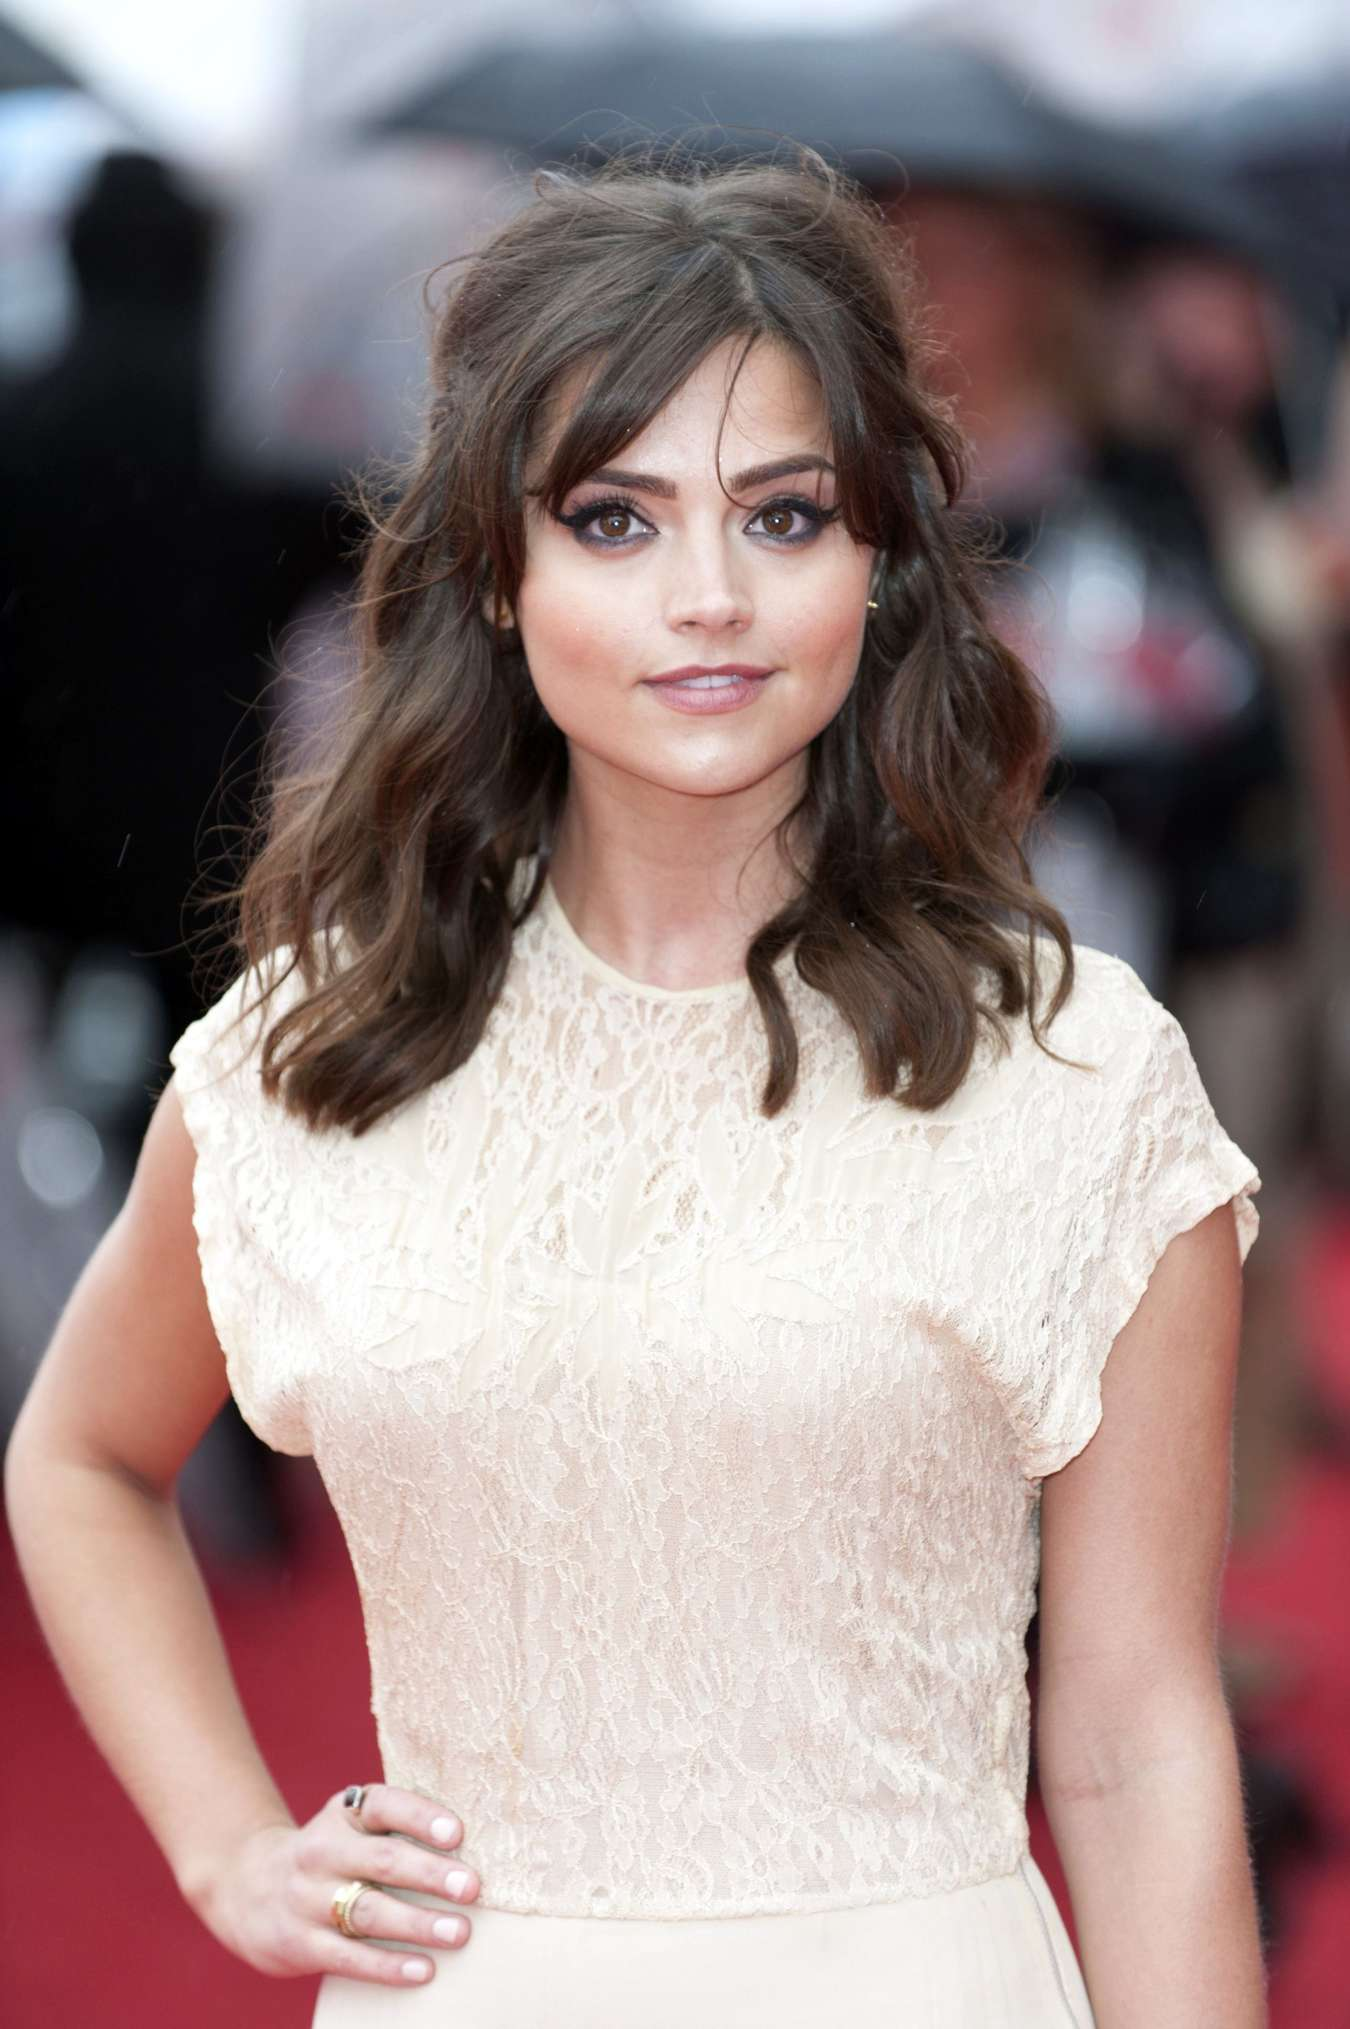 Celebrites Jenna-Louise Coleman nude (59 foto and video), Pussy, Paparazzi, Instagram, see through 2020